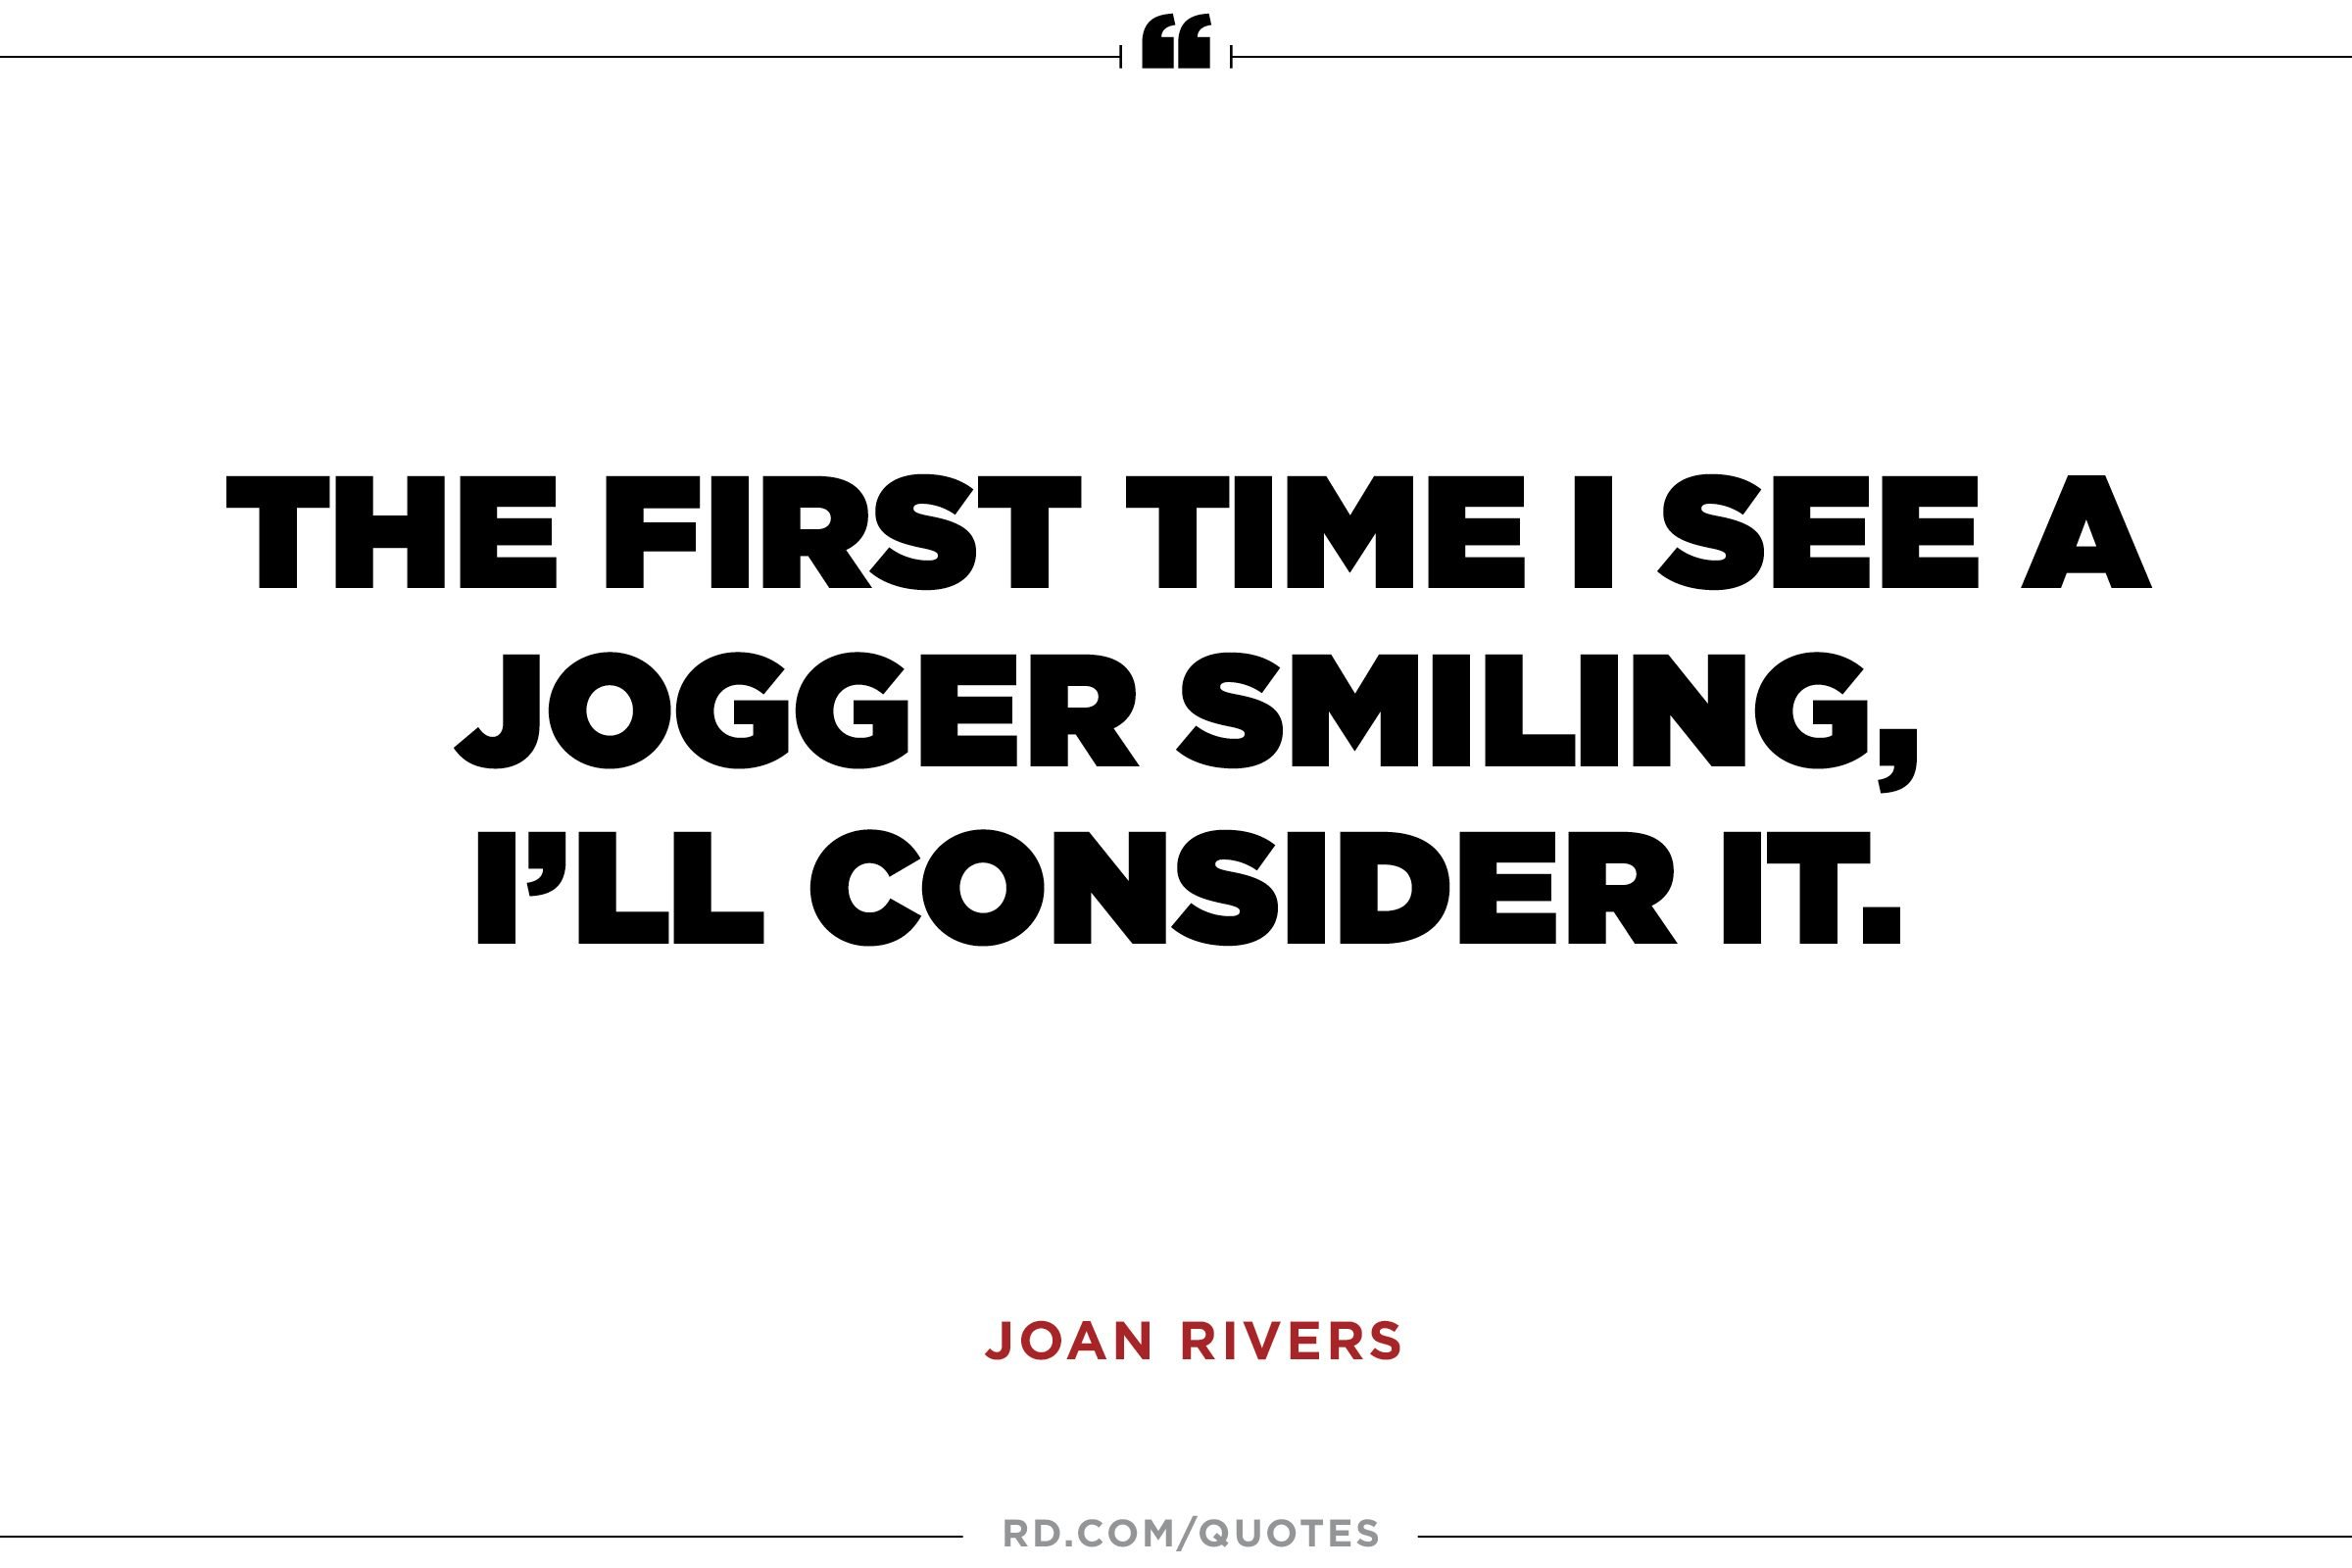 Funny Quotes For Candid Pictures: Joan Rivers Quotes: 7 Candid, Hilarious, Unapologetic